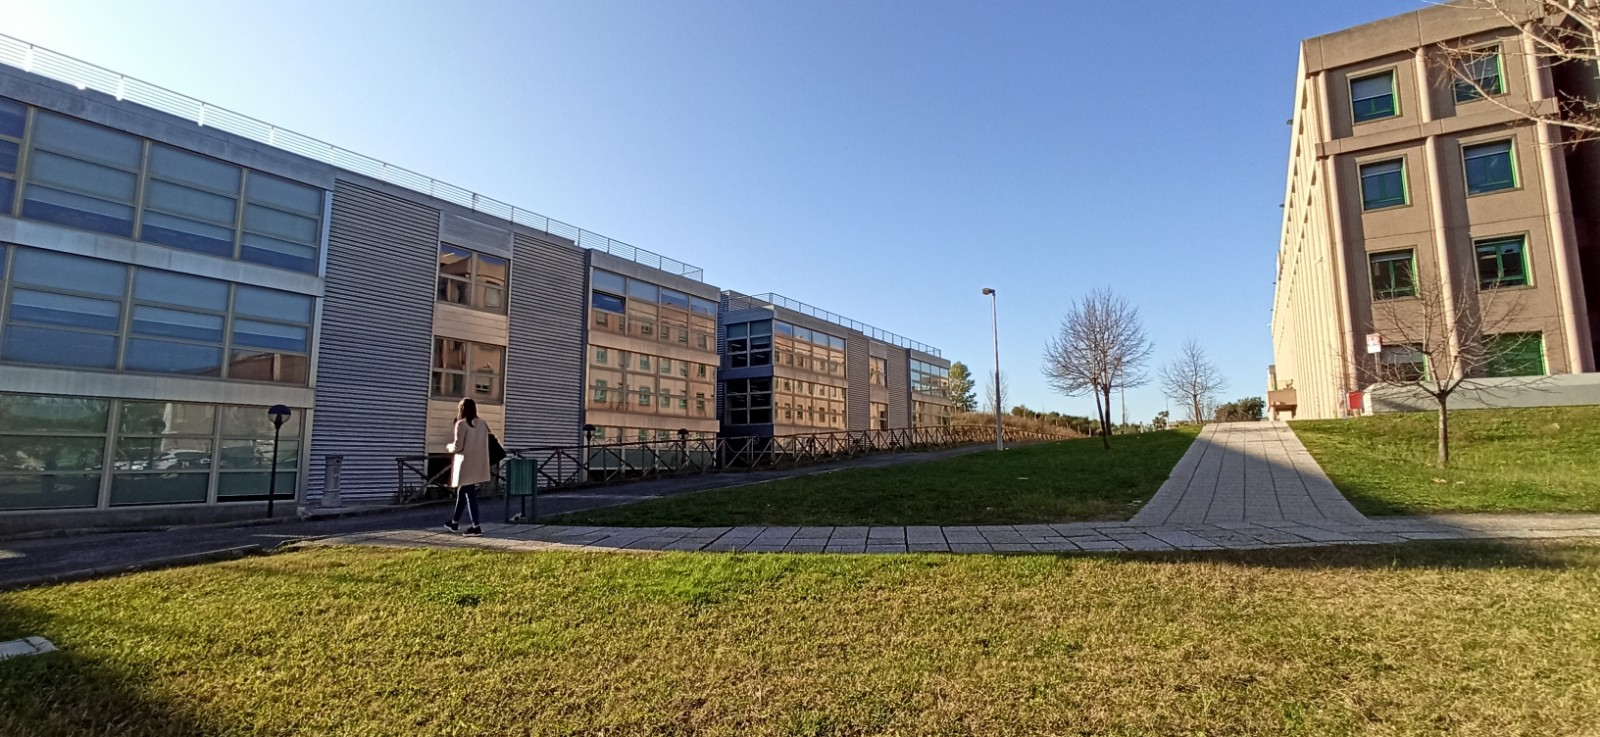 Didactic building